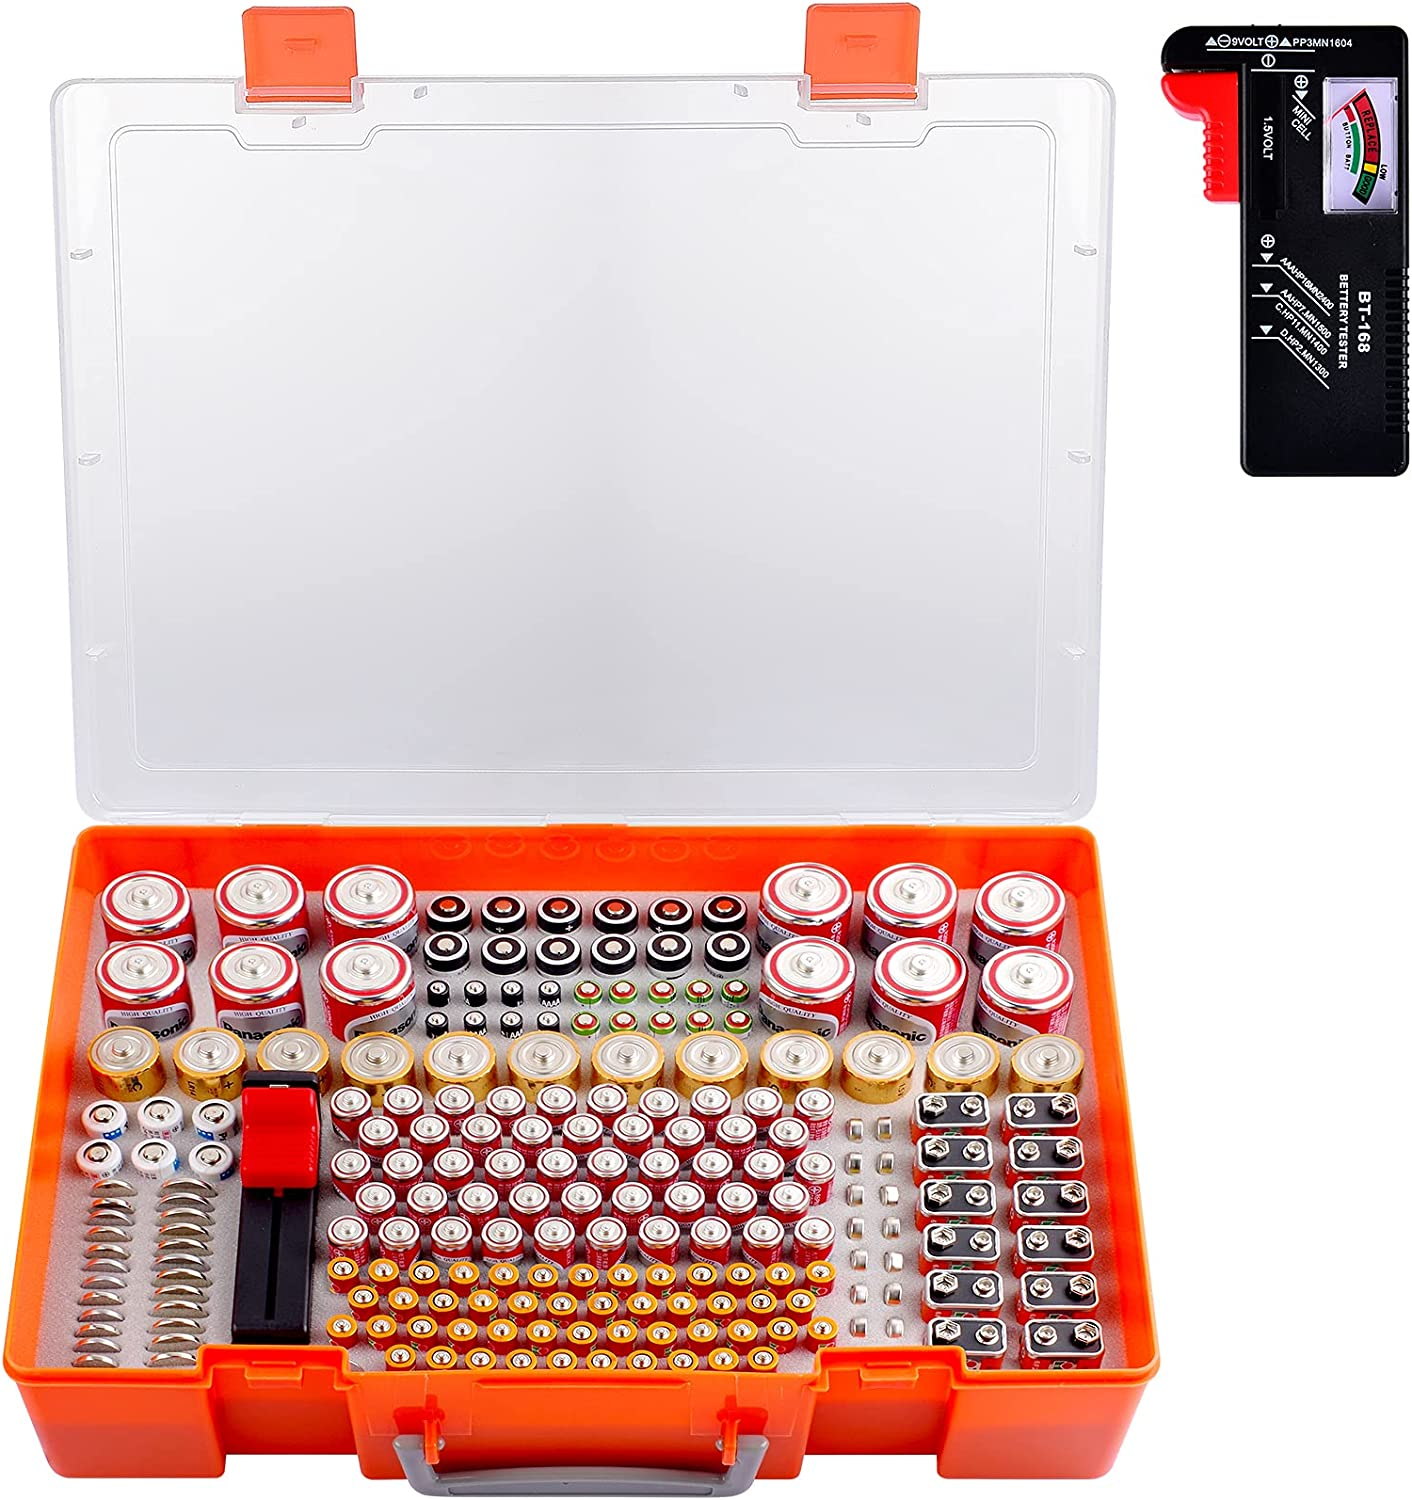 Battery Organizer Storage Box w//Battery Tester for Checker Battery Capacity #8Y